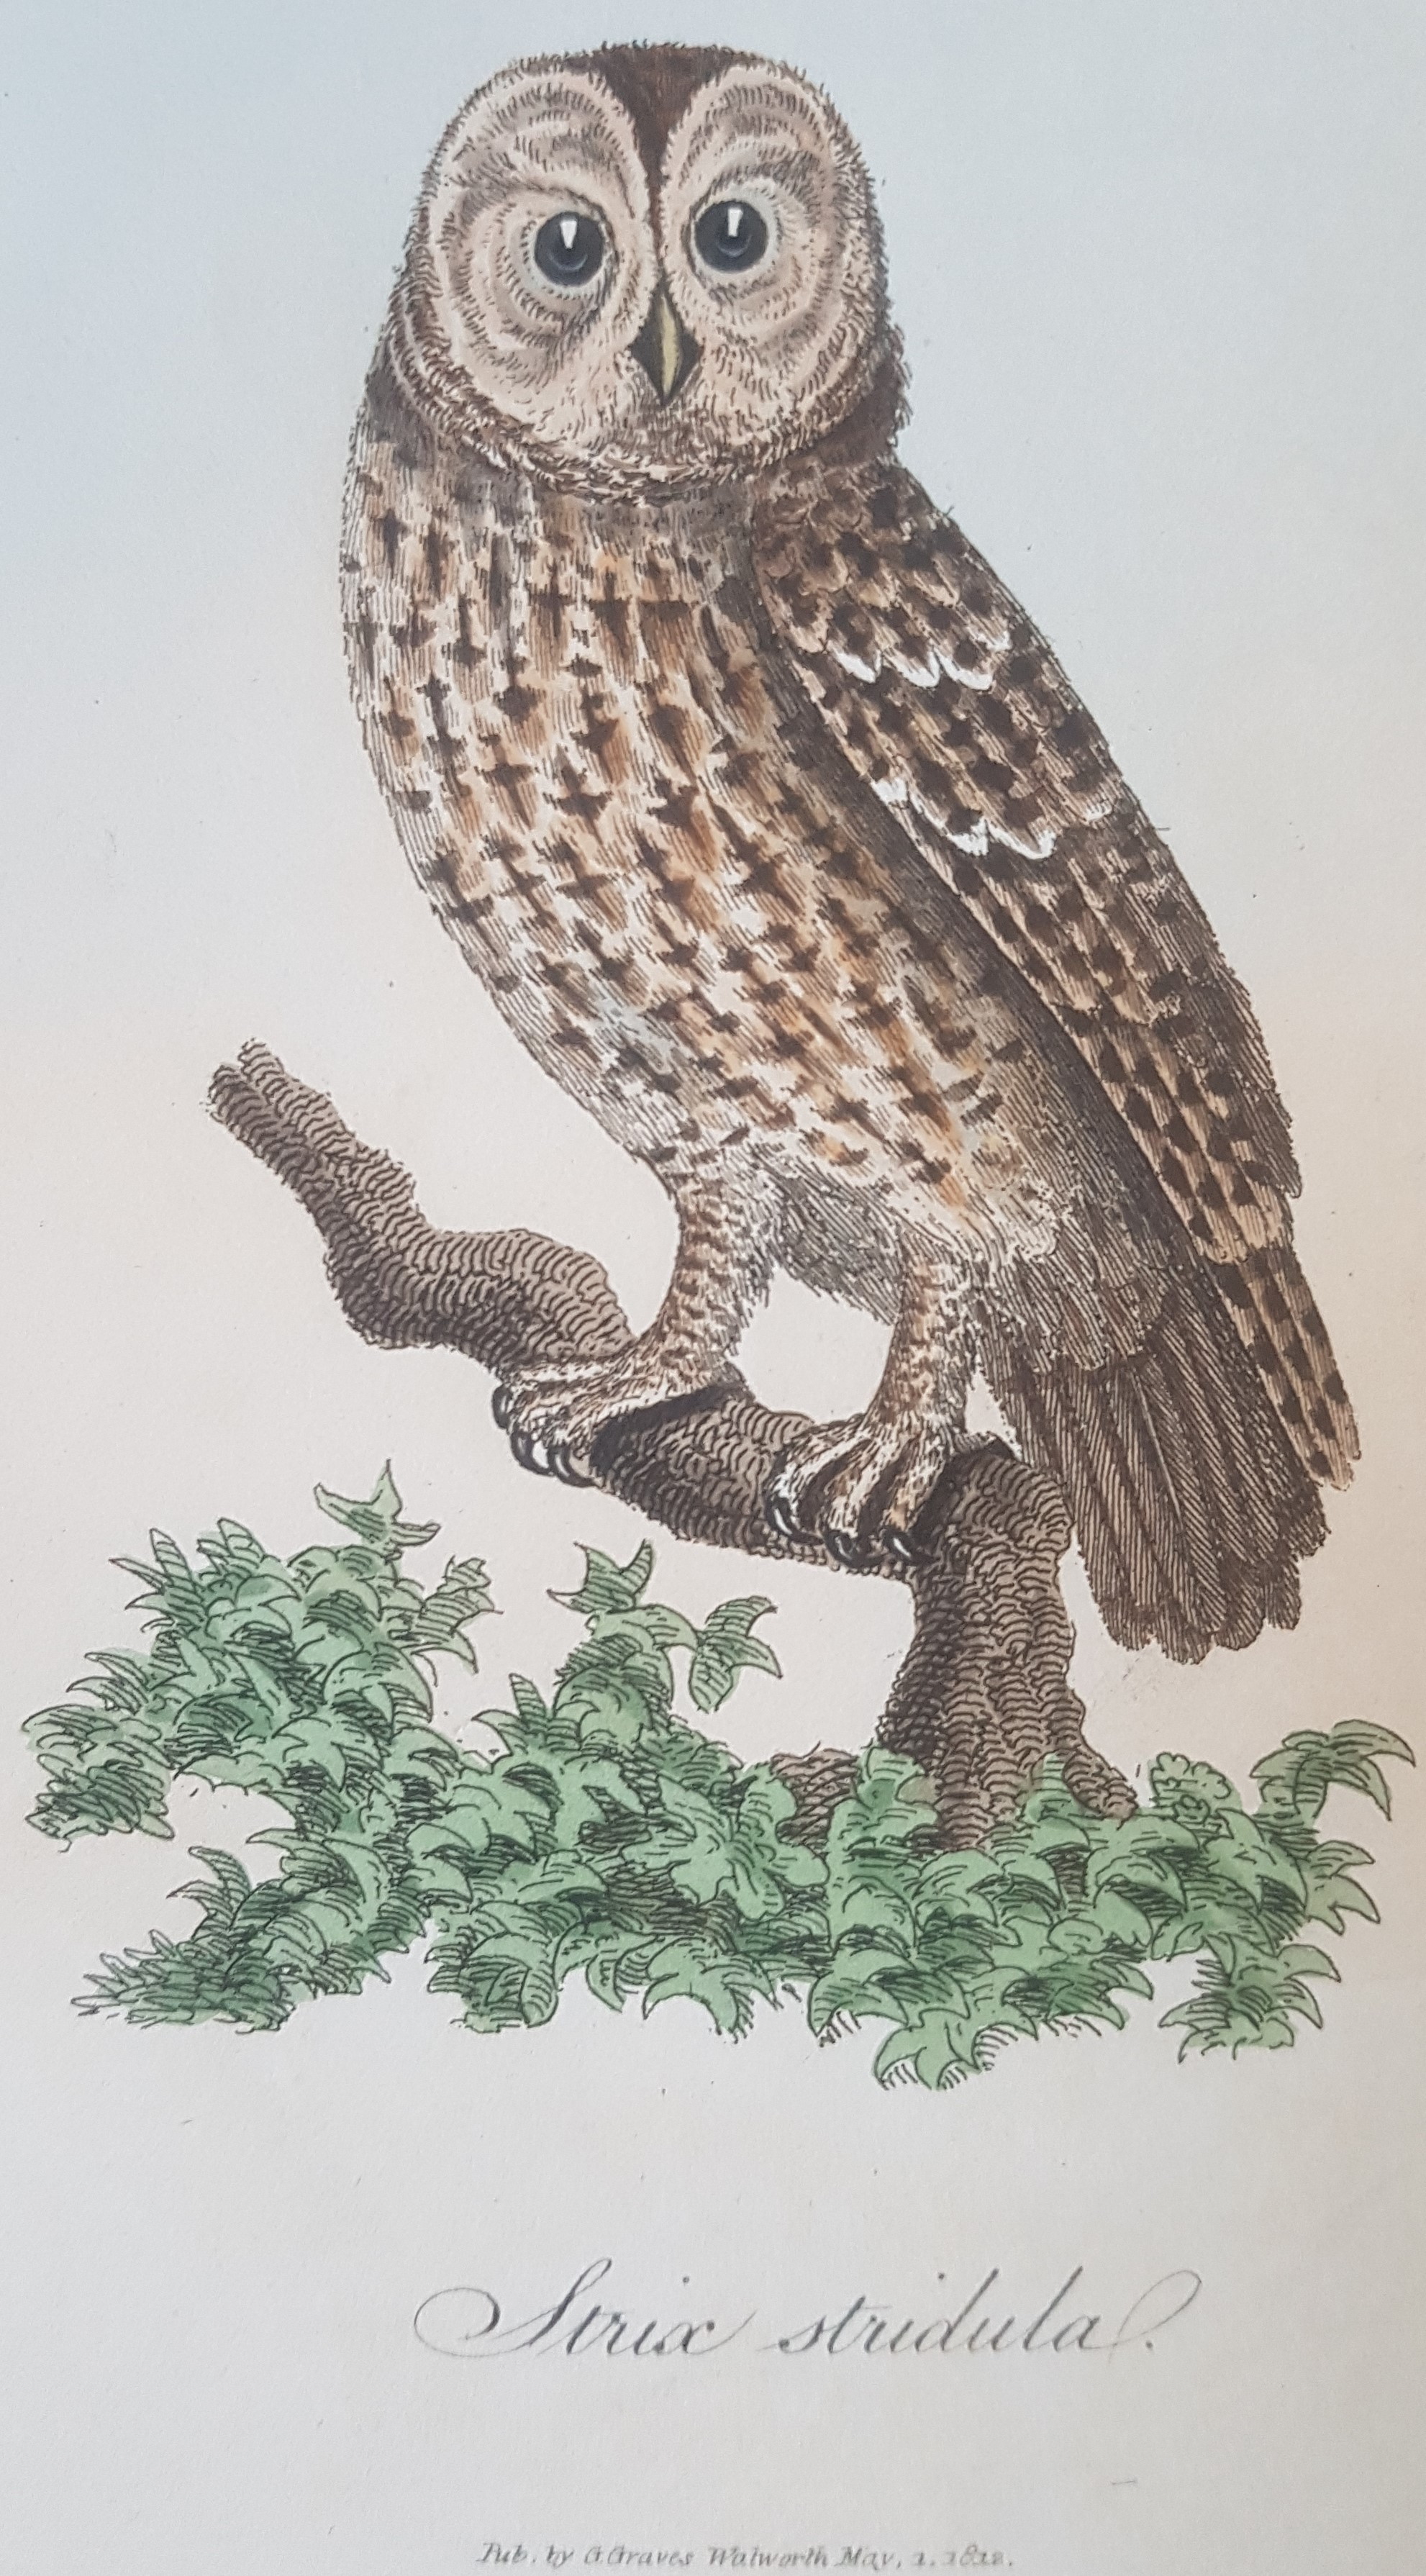 Illustration of a tawny owl.